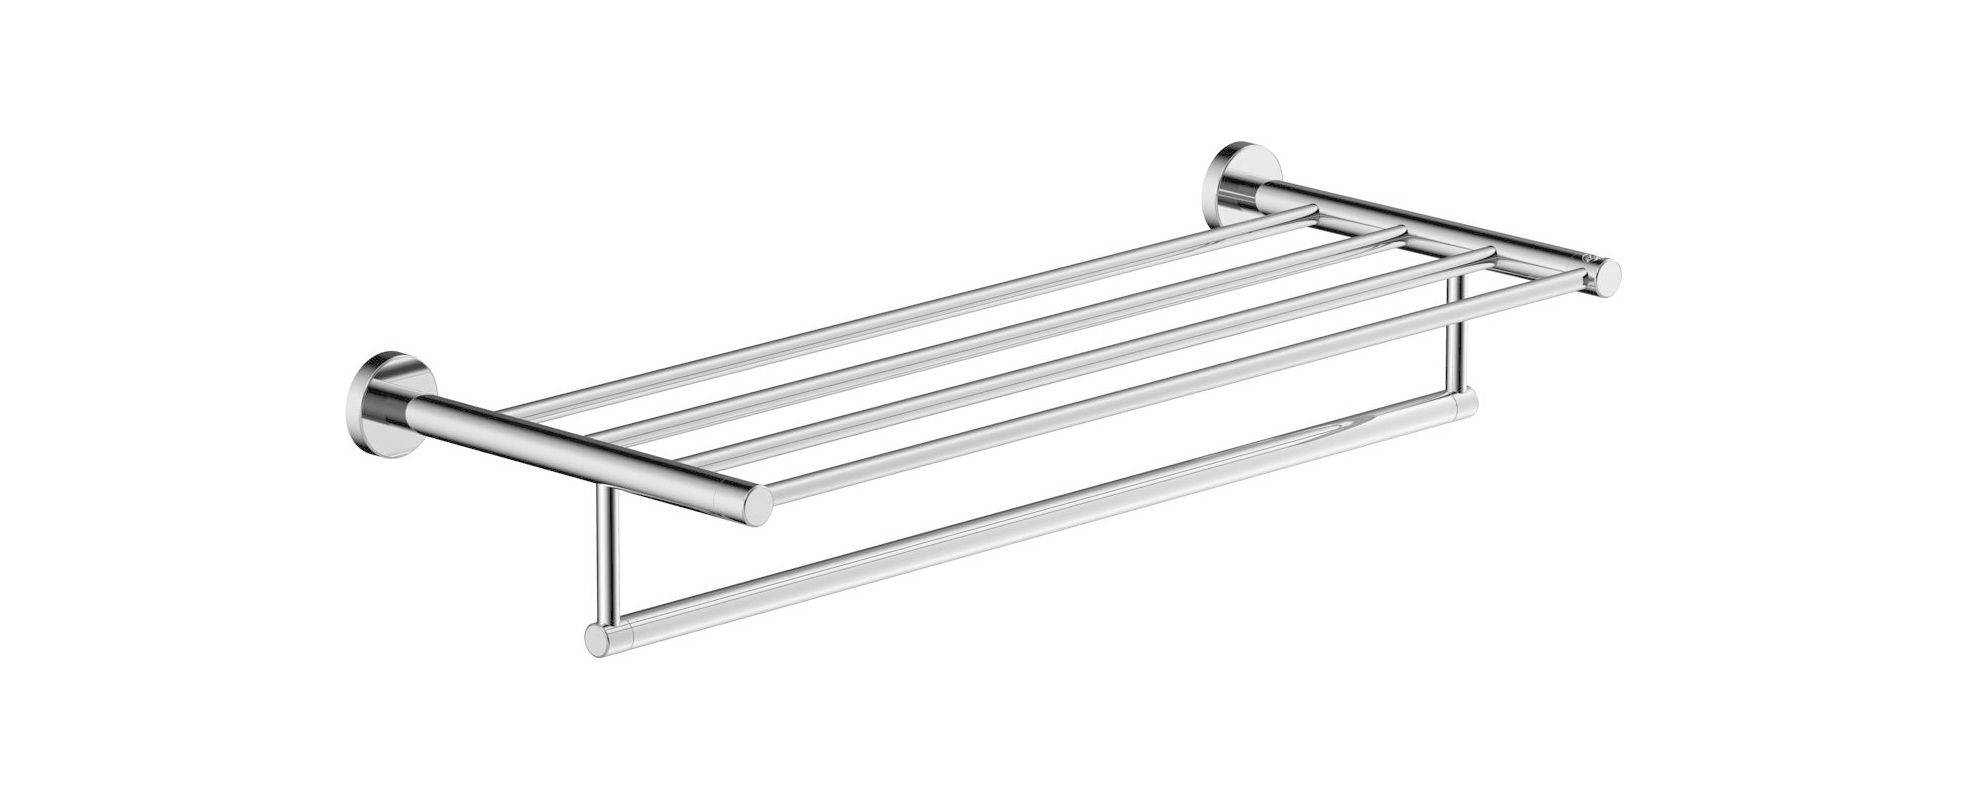 DIA Towel SHELF 22